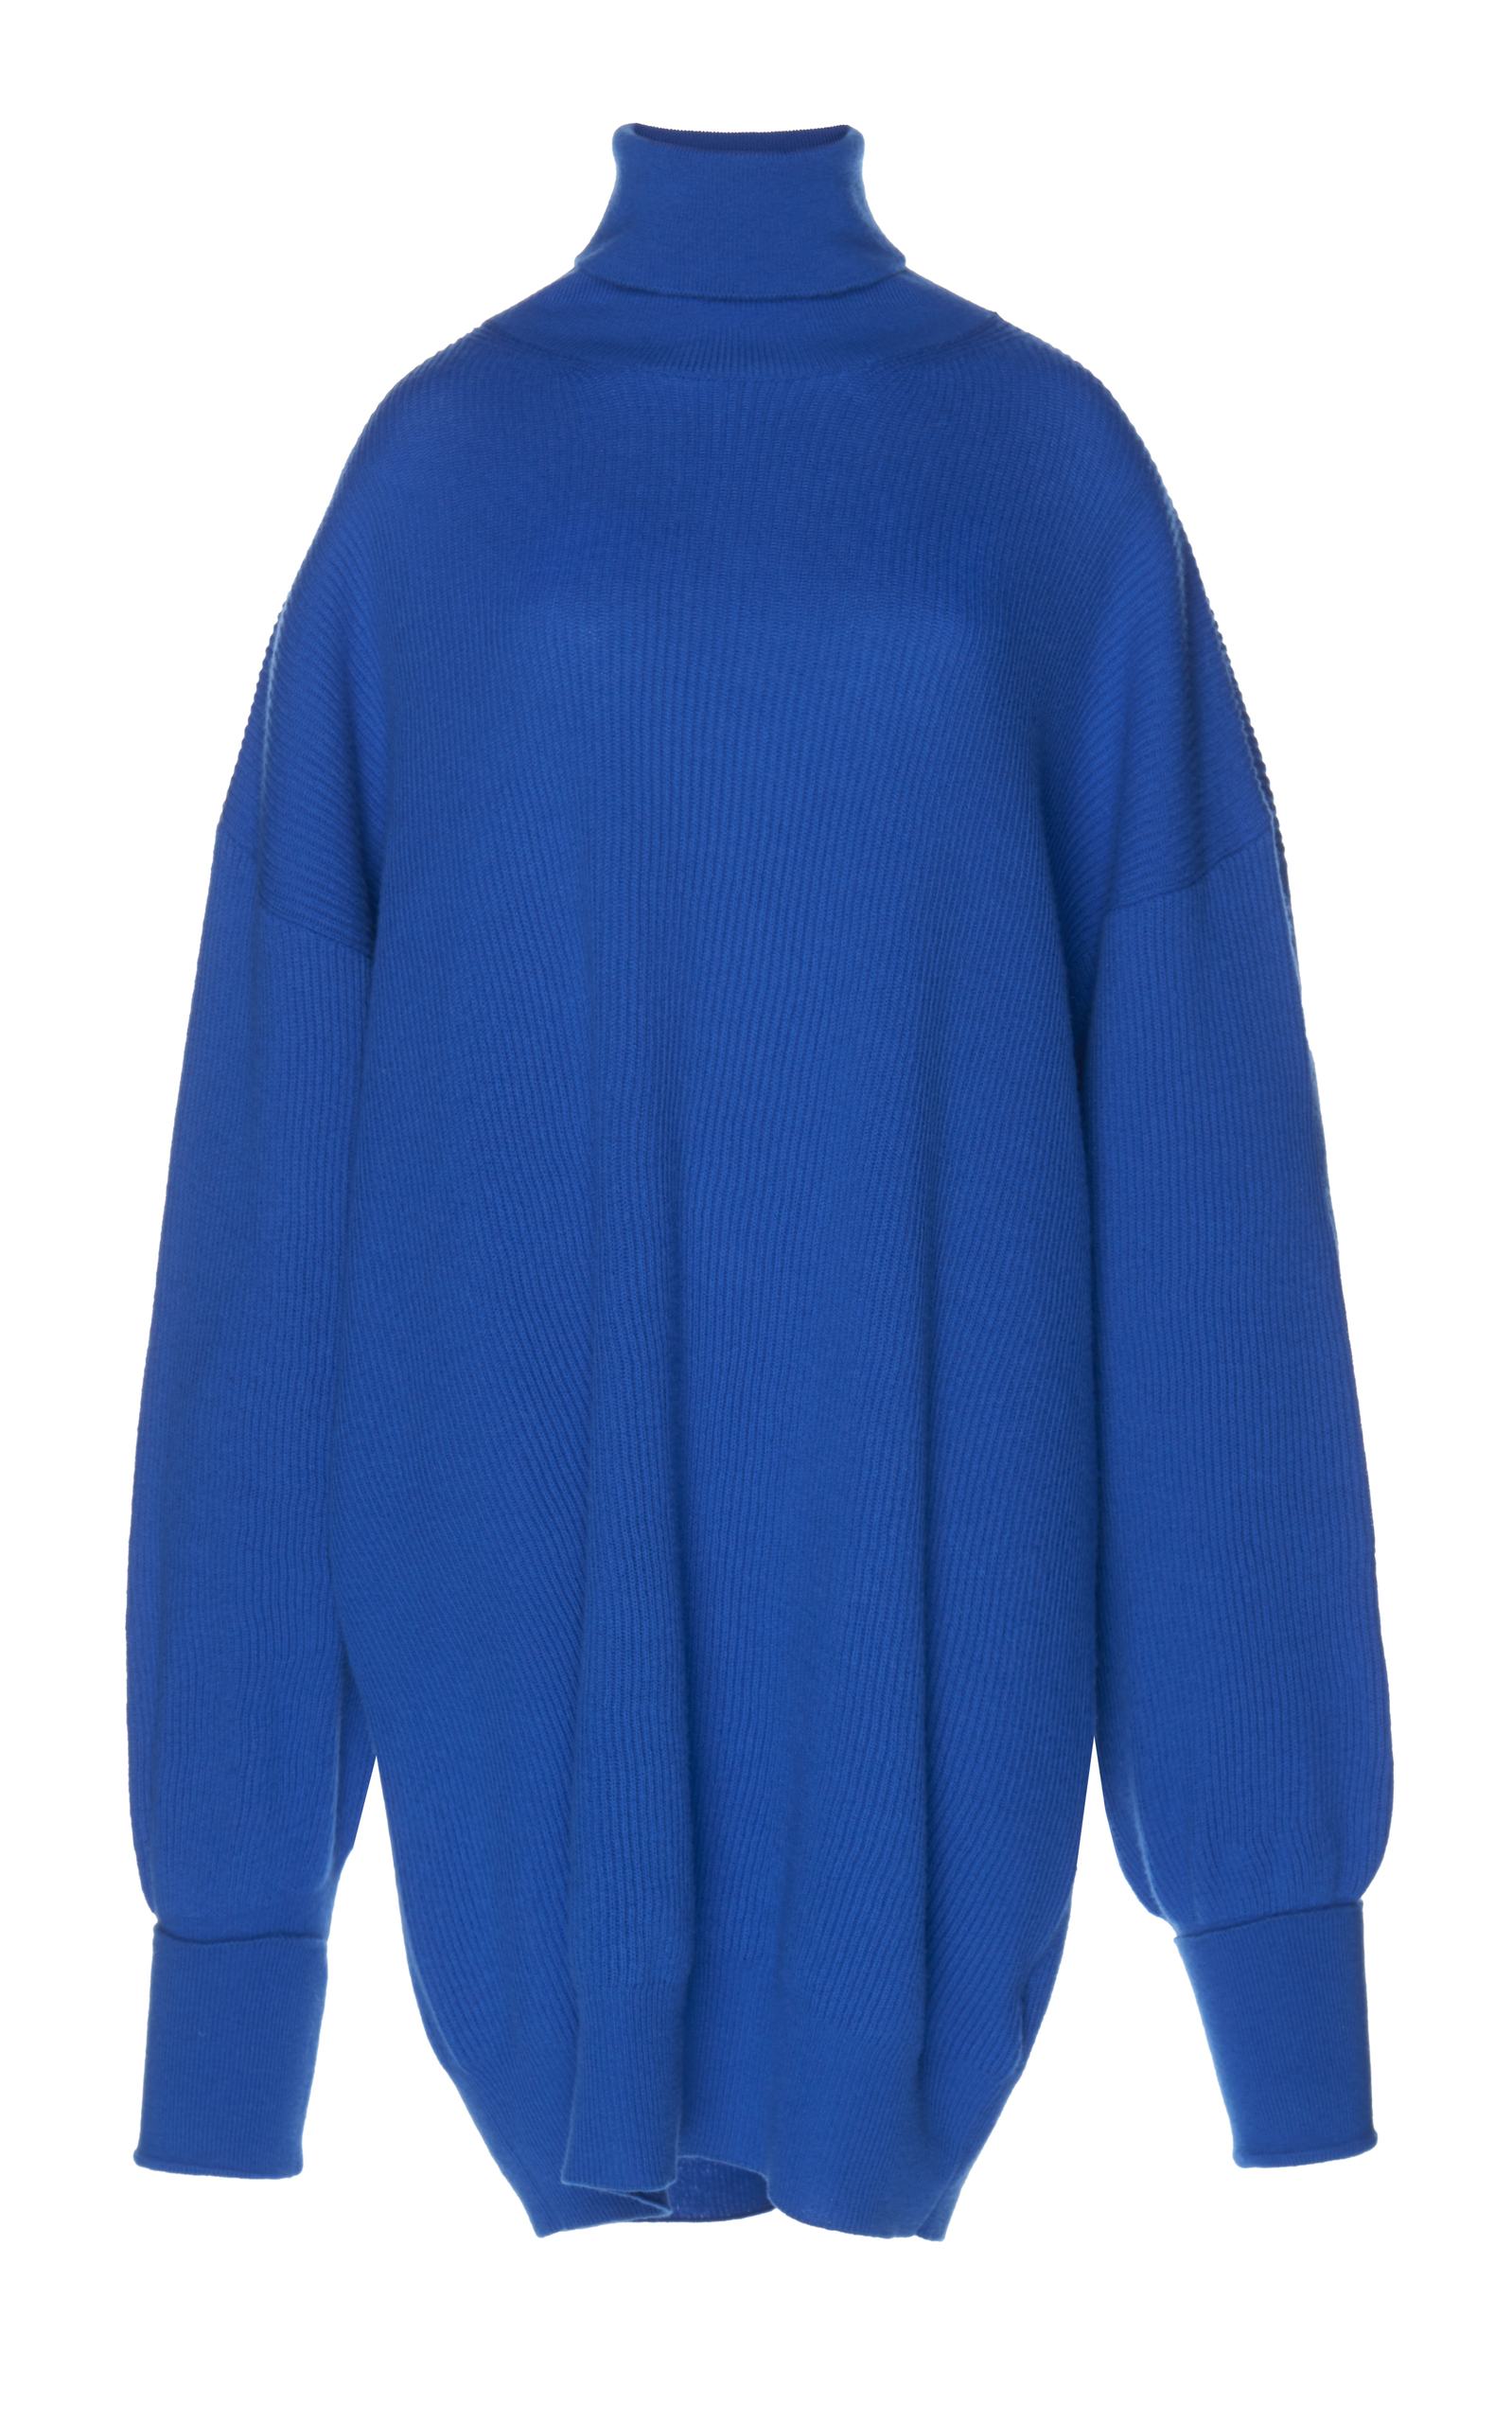 Suede-Patch Wool Oversized Sweater - Blue Size S